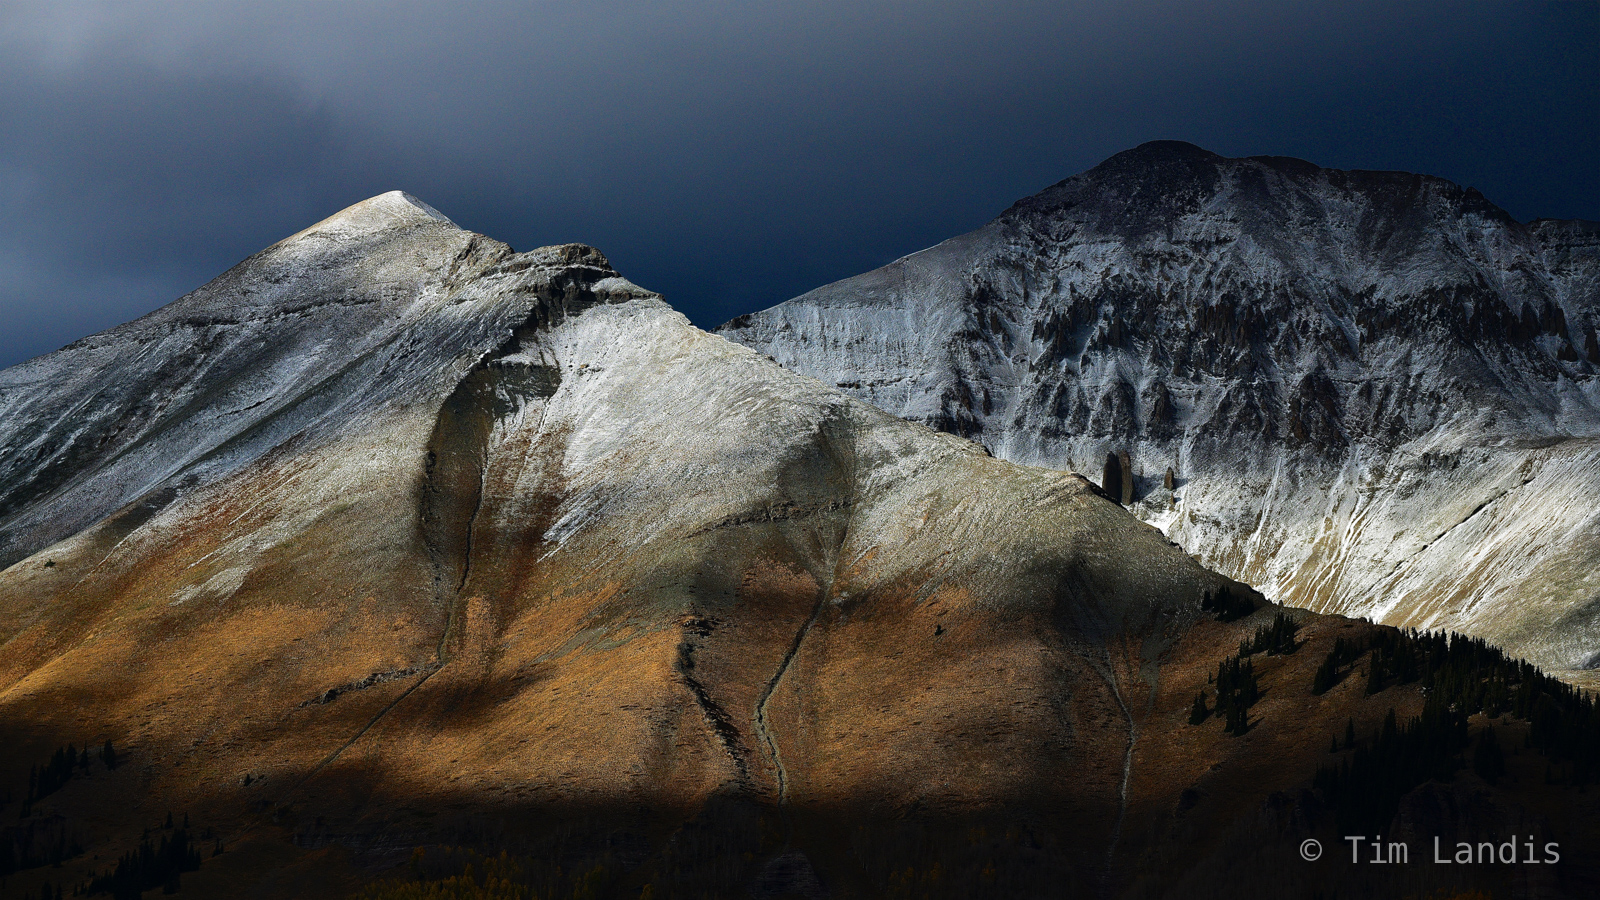 Winter approaches, contours, earth tones, snowy peaks, photo